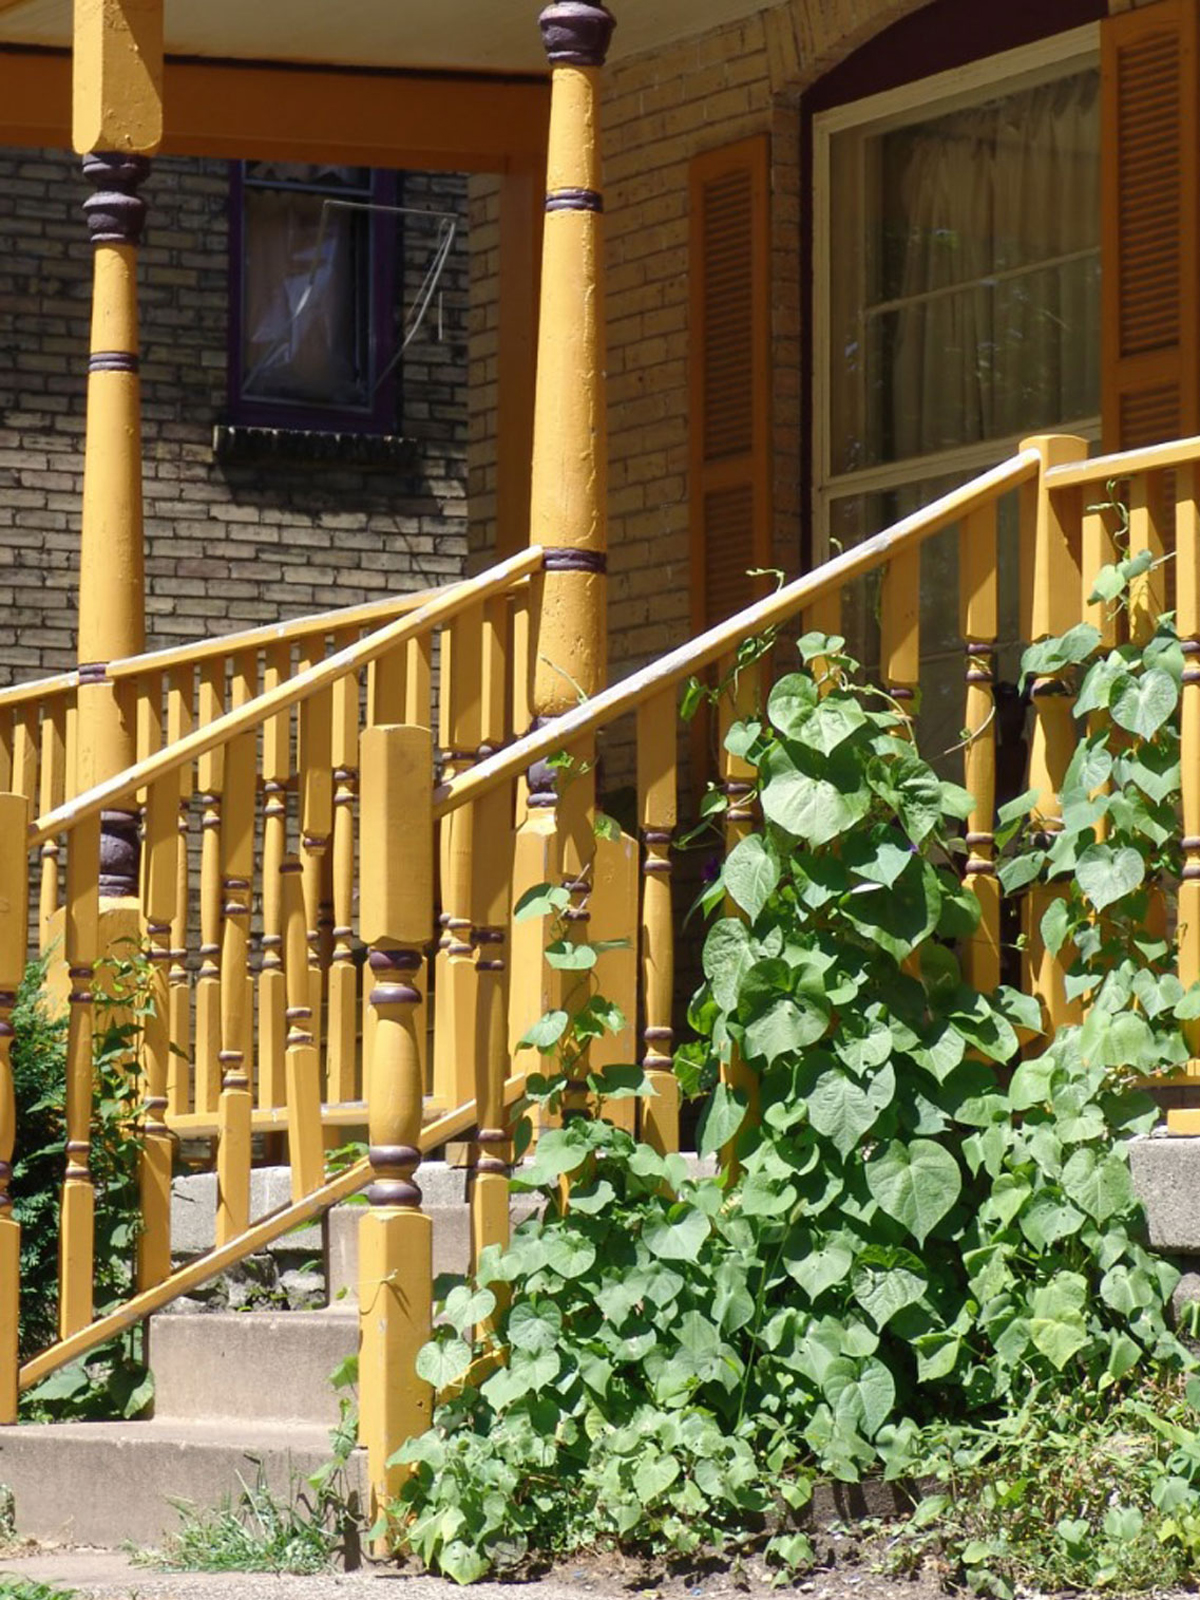 decorative interior wrought iron railing wrought iron.htm balcony railing support for plants     can you grow vines on a handrail  balcony railing support for plants